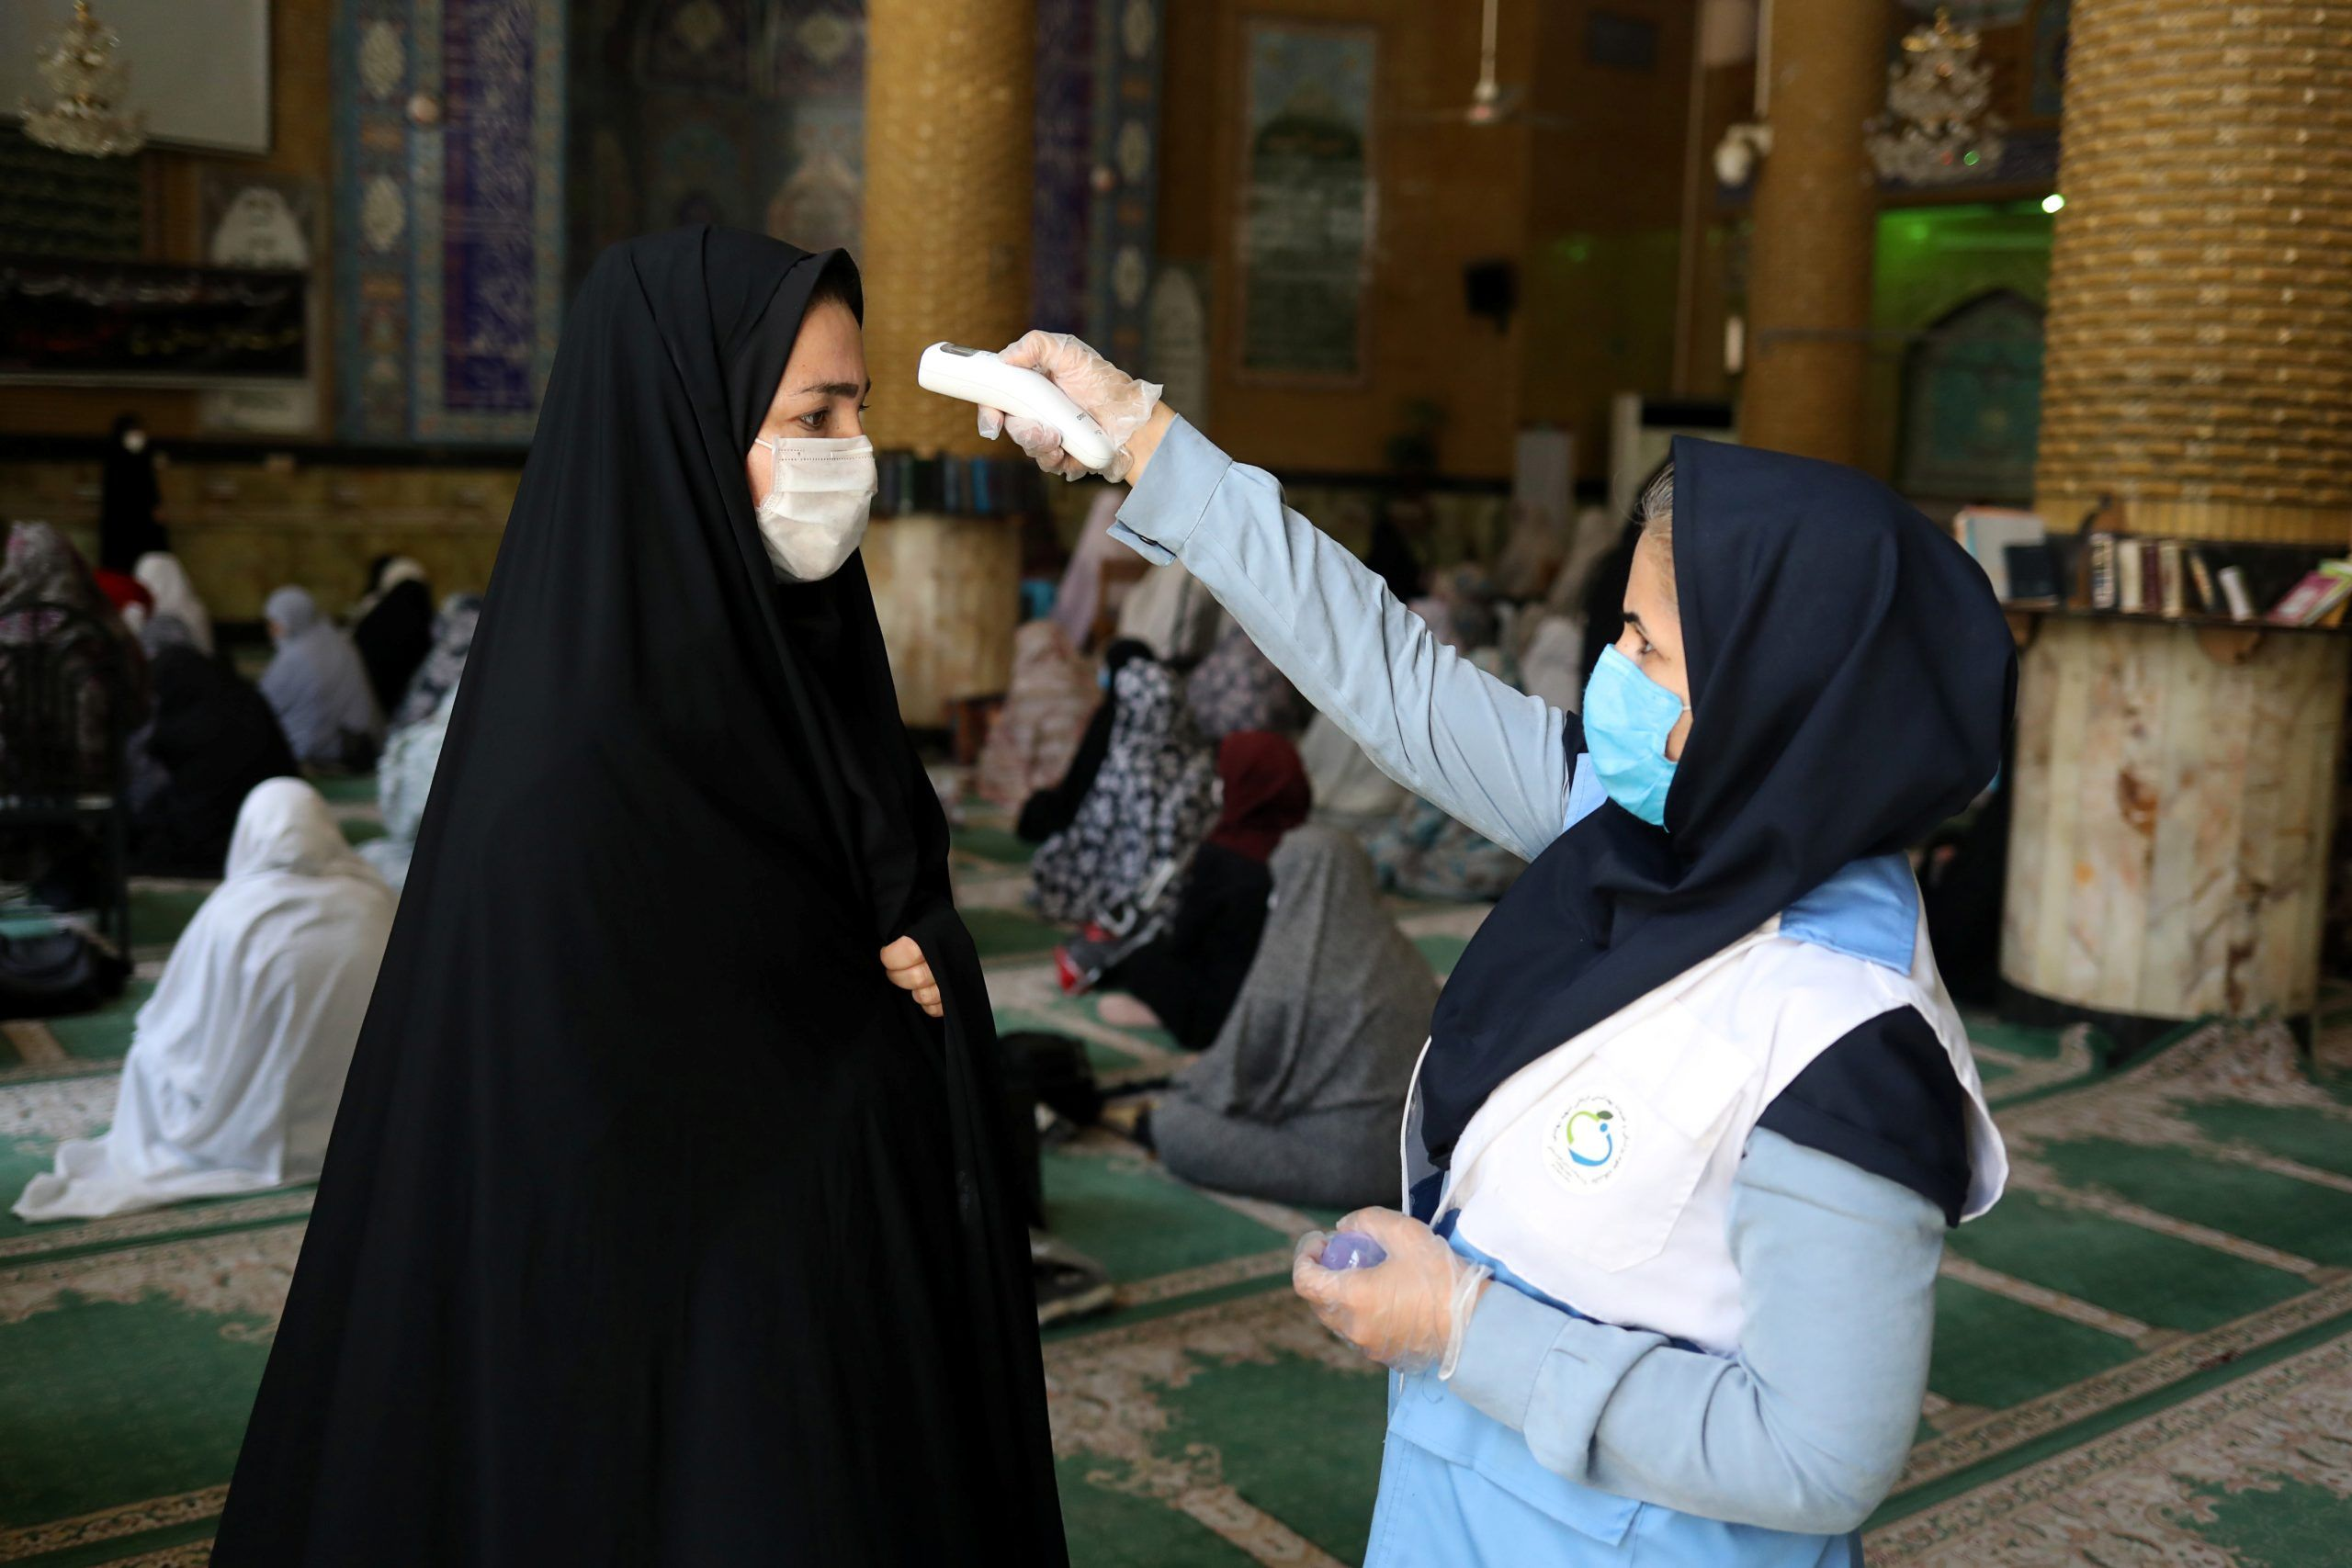 An Iranian woman wearing a protective face mask checks the temperature of a worshipper before attending the Friday prayers in Qarchak Jamee Mosque, following the outbreak of the coronavirus disease (COVID-19), in Tehran province, in Qarchak, Iran, June 12, 2020. REUTERS./